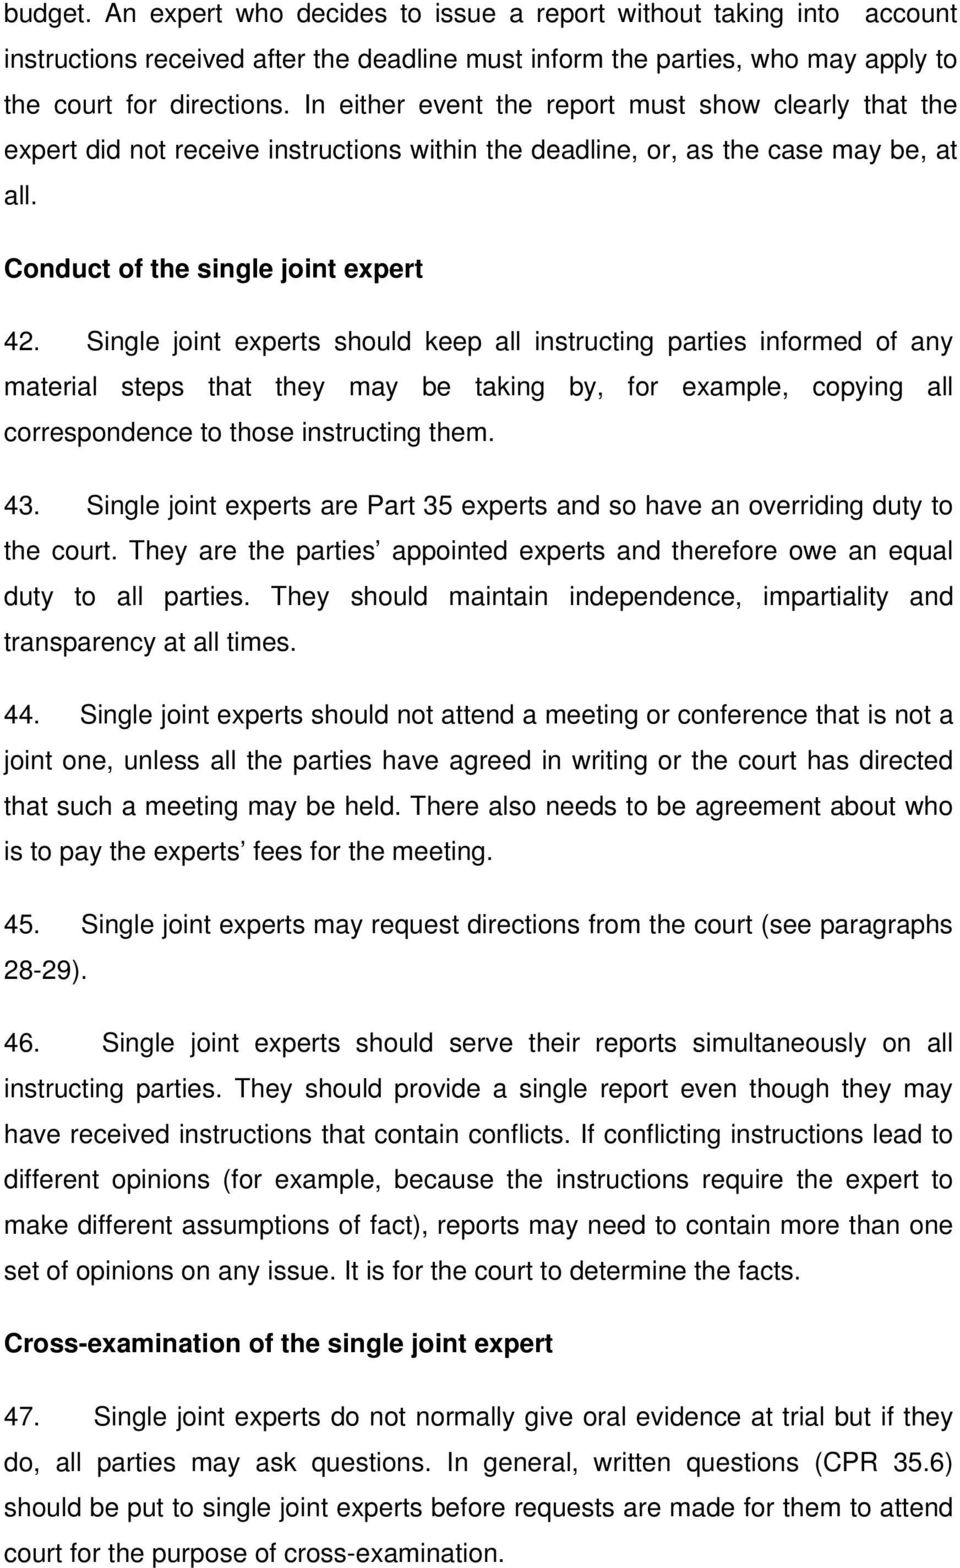 Single joint experts should keep all instructing parties informed of any material steps that they may be taking by, for example, copying all correspondence to those instructing them. 43.